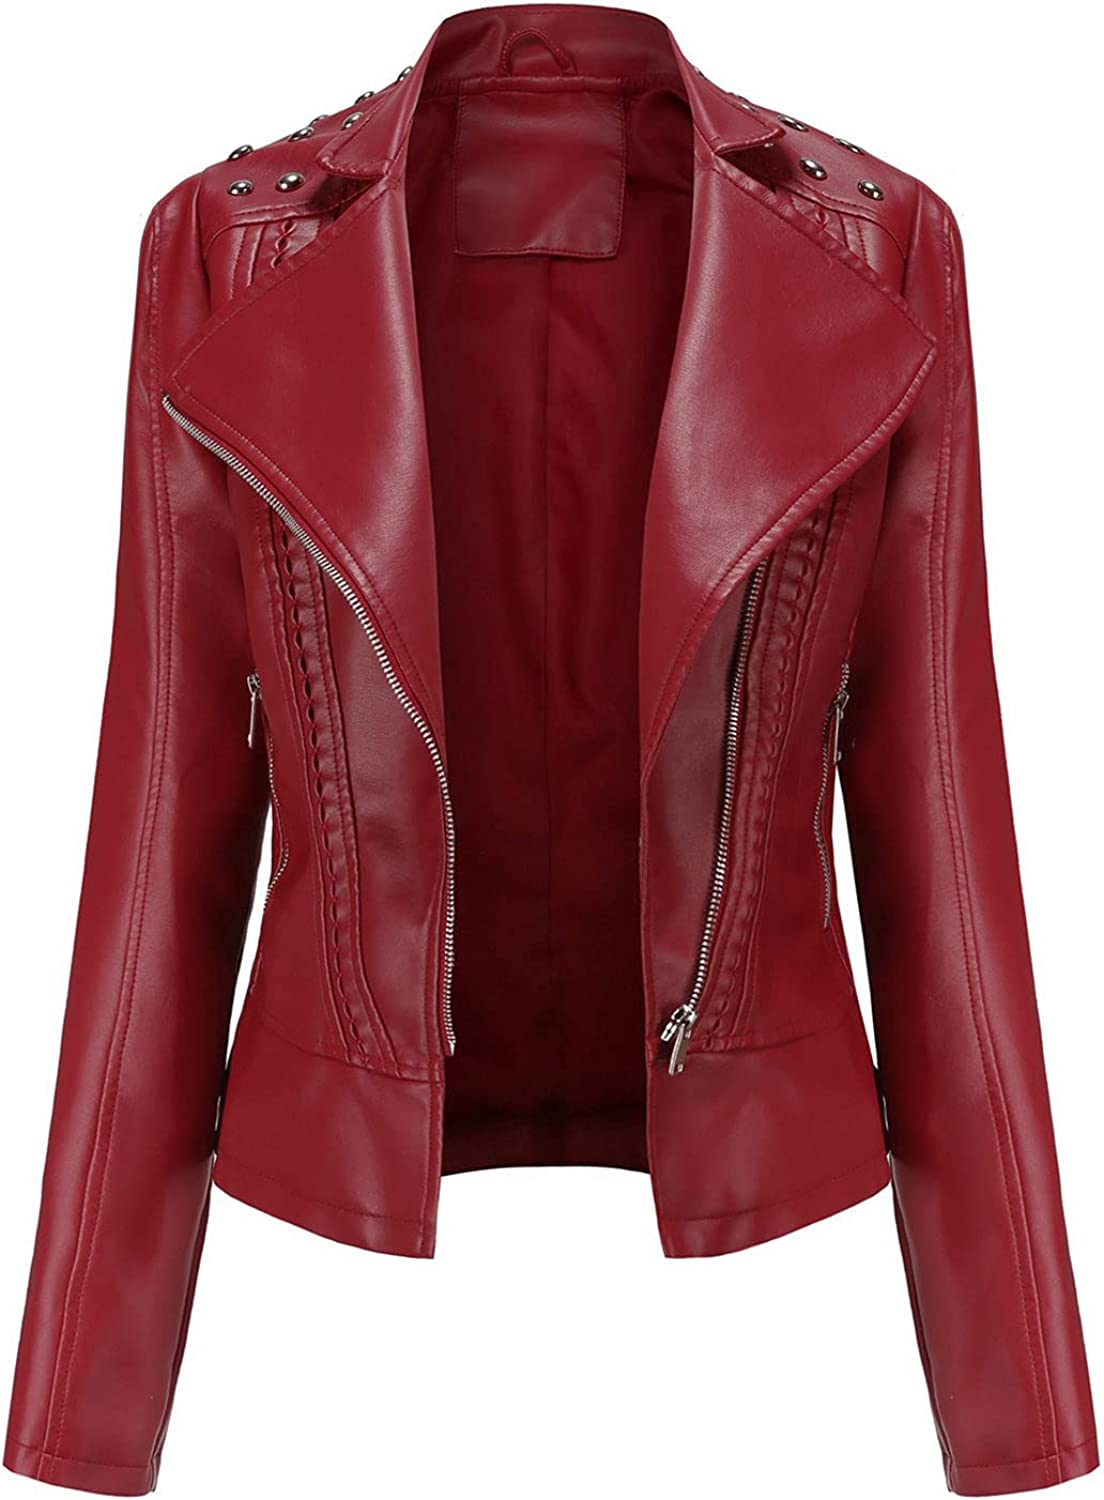 Women's Faux Leather Fashion Quilted Moto Biker Jacket Plus Size and Regular Size Long Sleeve Vintage Open Jackets